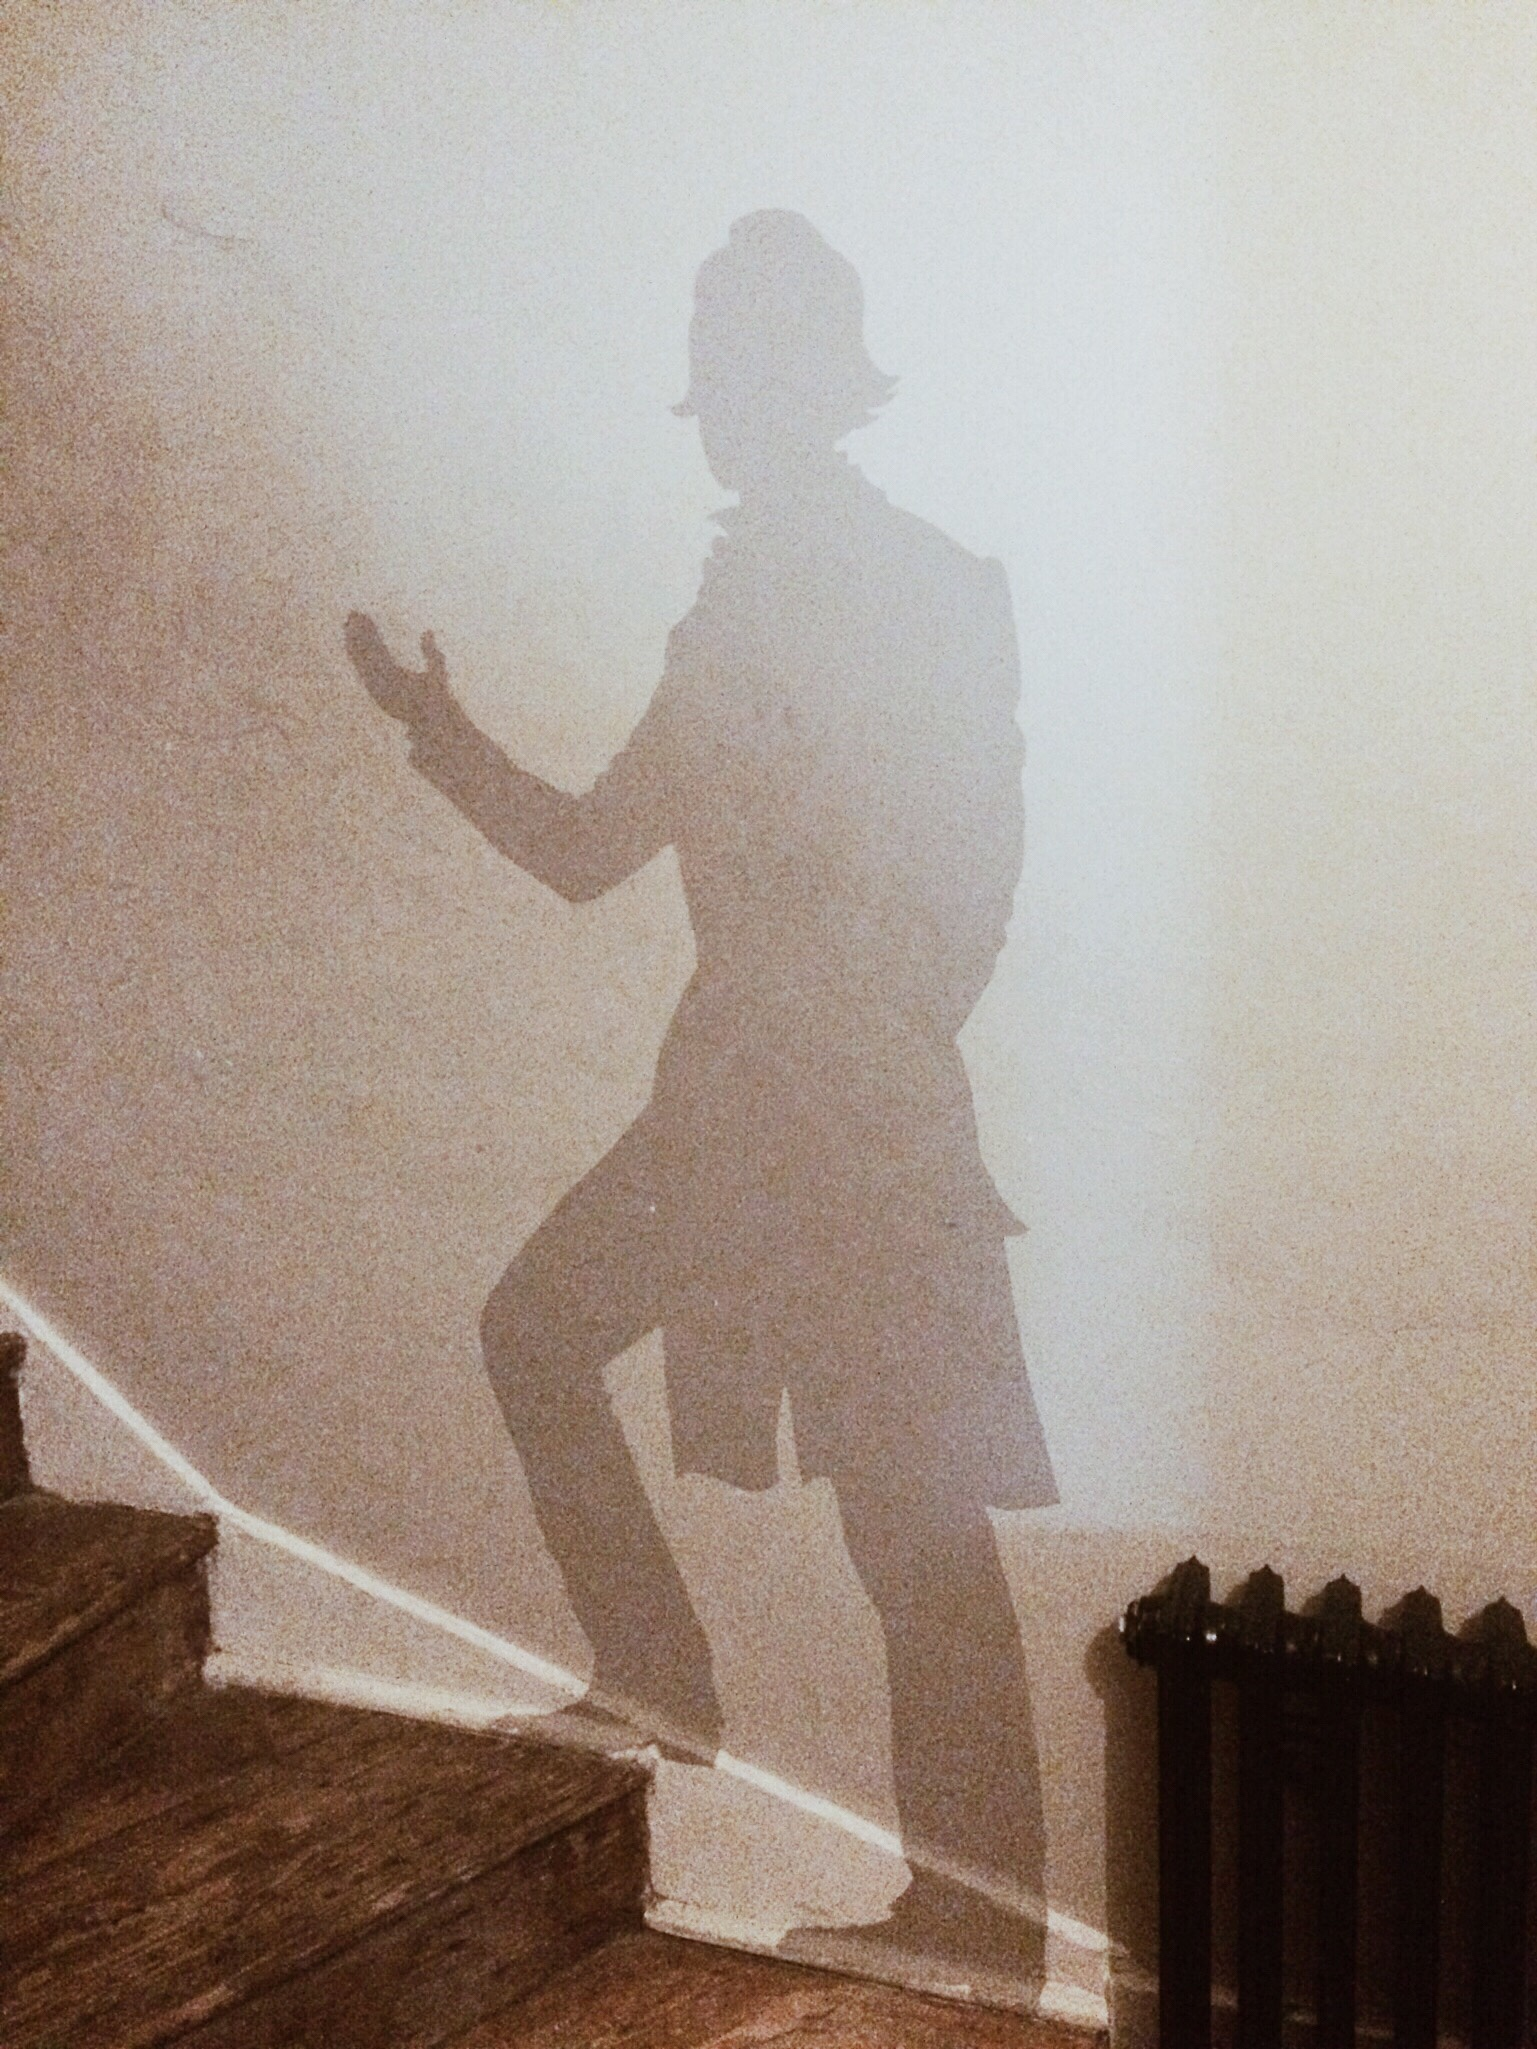 Charles Dickens, silhouettes, museums in London, London attractions